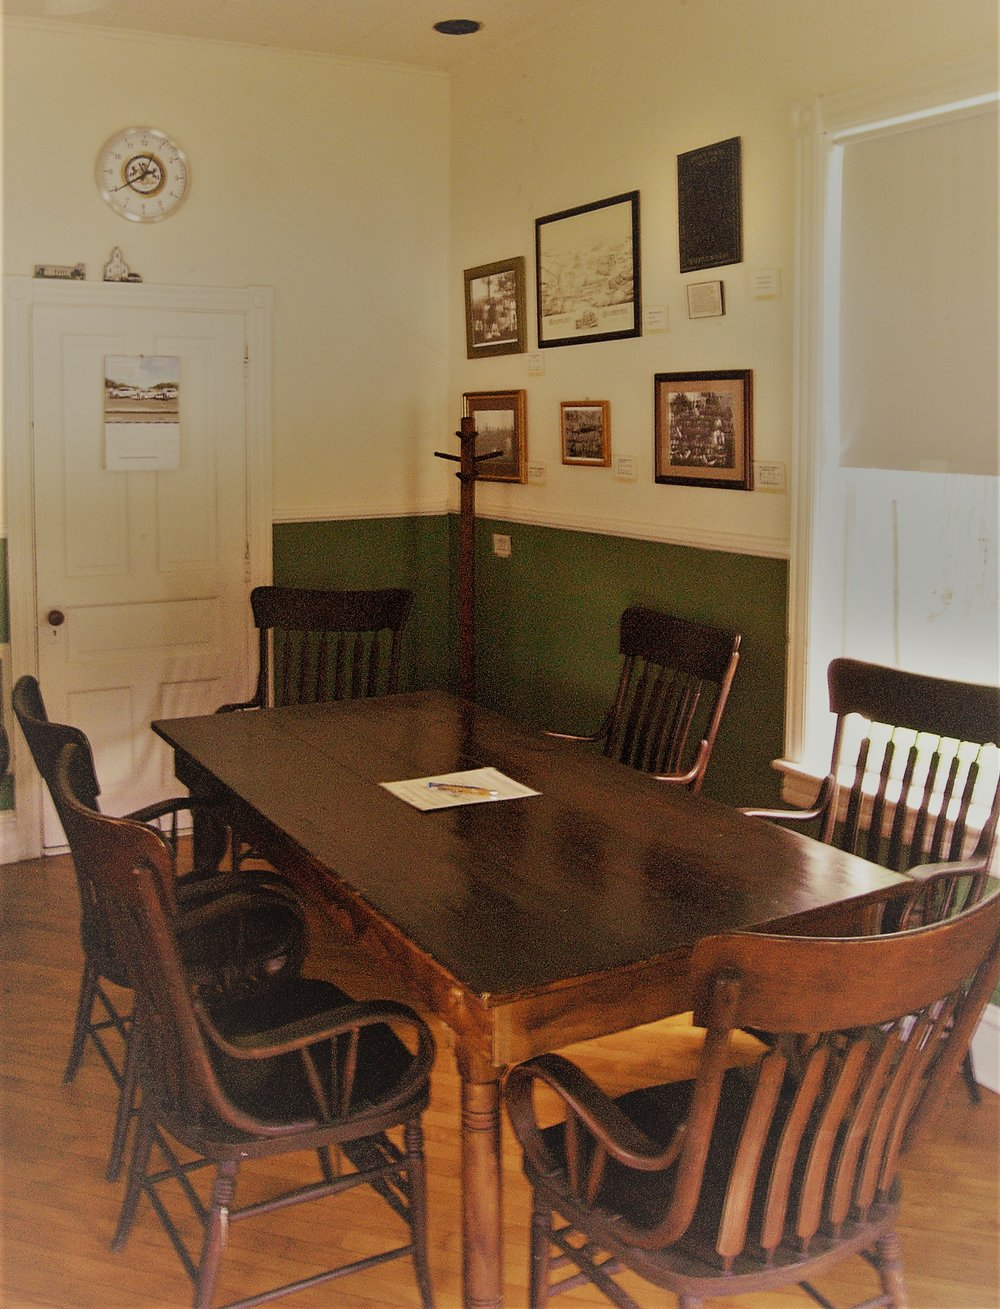 Chapman Borough Hall - Meeting Room